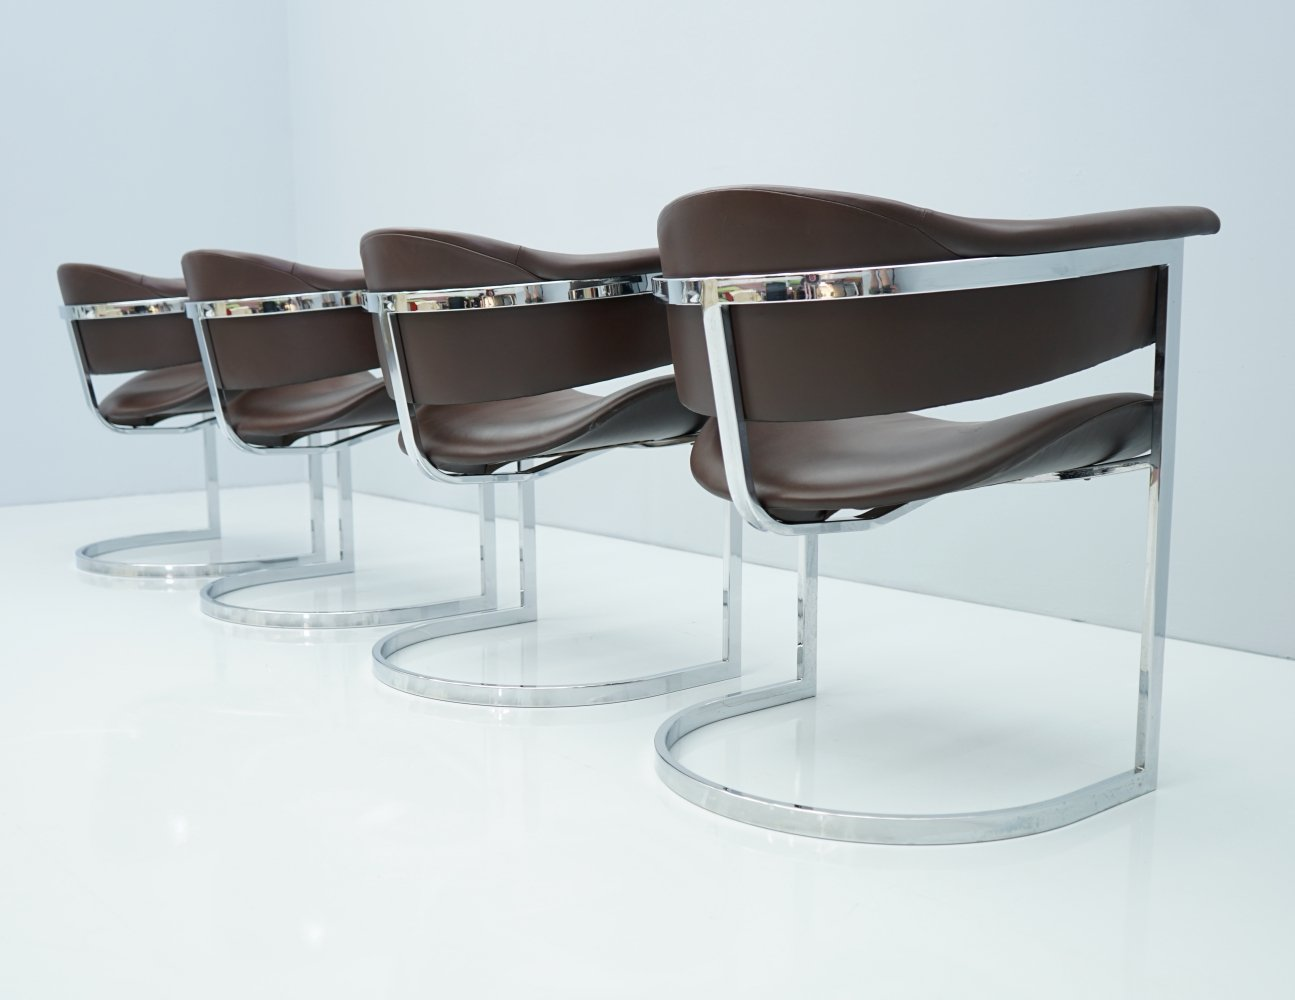 Set of 4 Dining Chairs in Tubular, Chrome & Leather by Vittorio Introini, 1970s